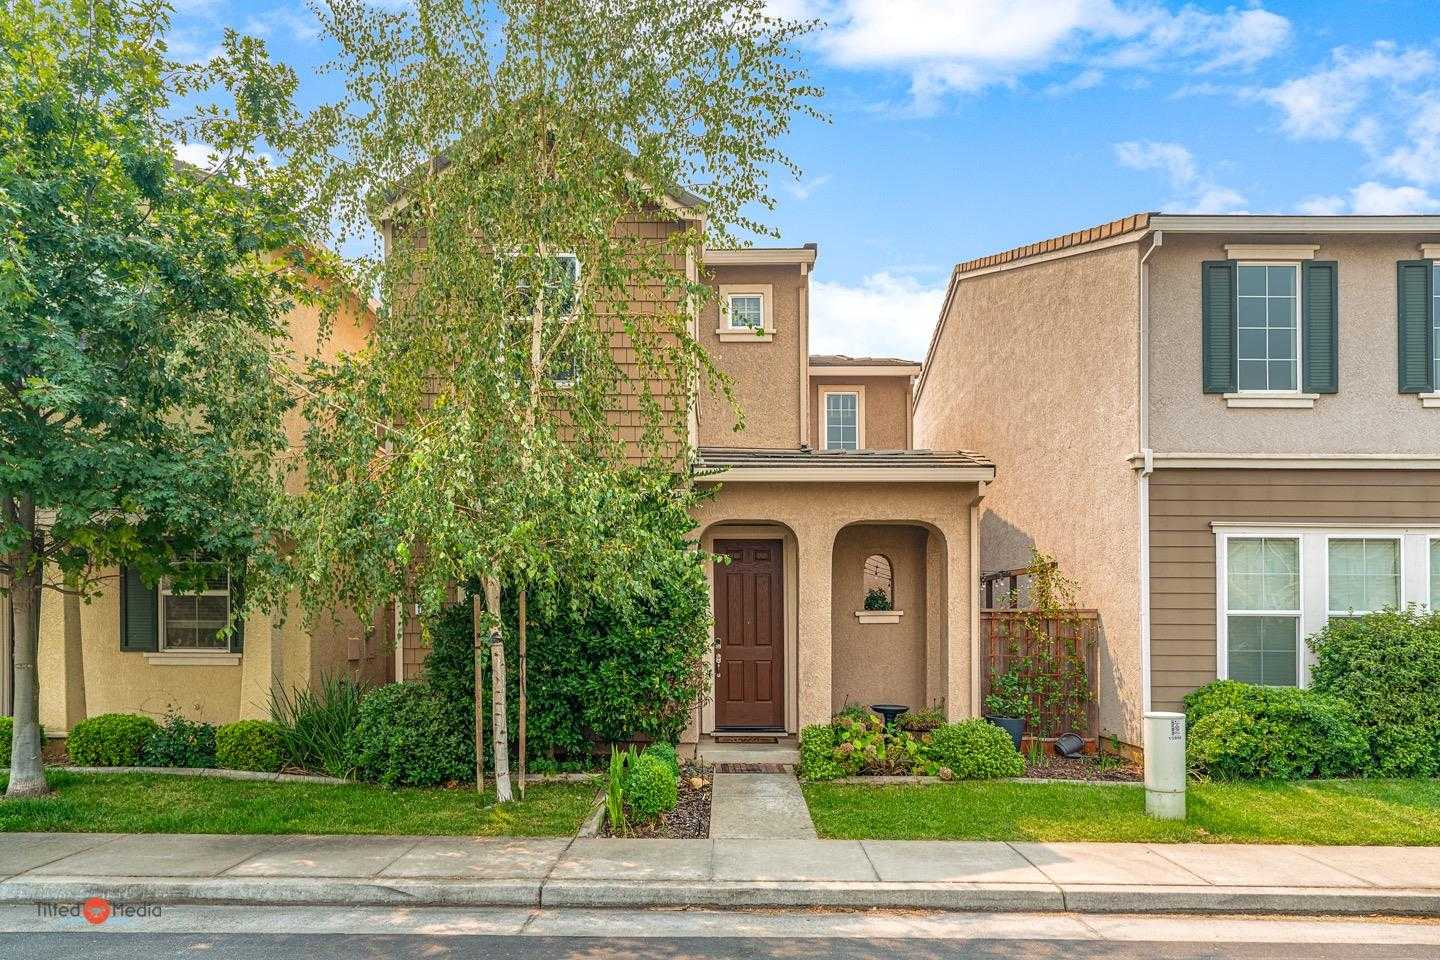 $385,000 - 3Br/3Ba -  for Sale in Rancho Cordova